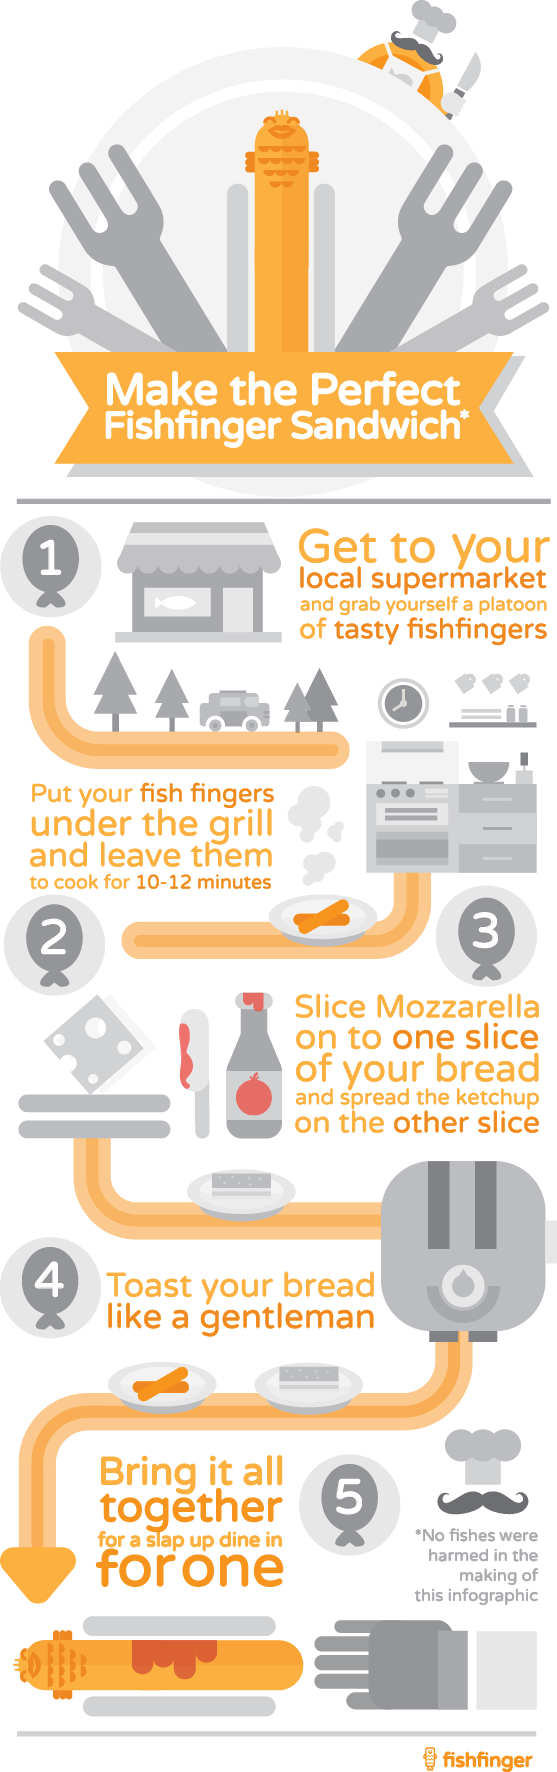 How to Make the Perfect Fishfinger Sandwich